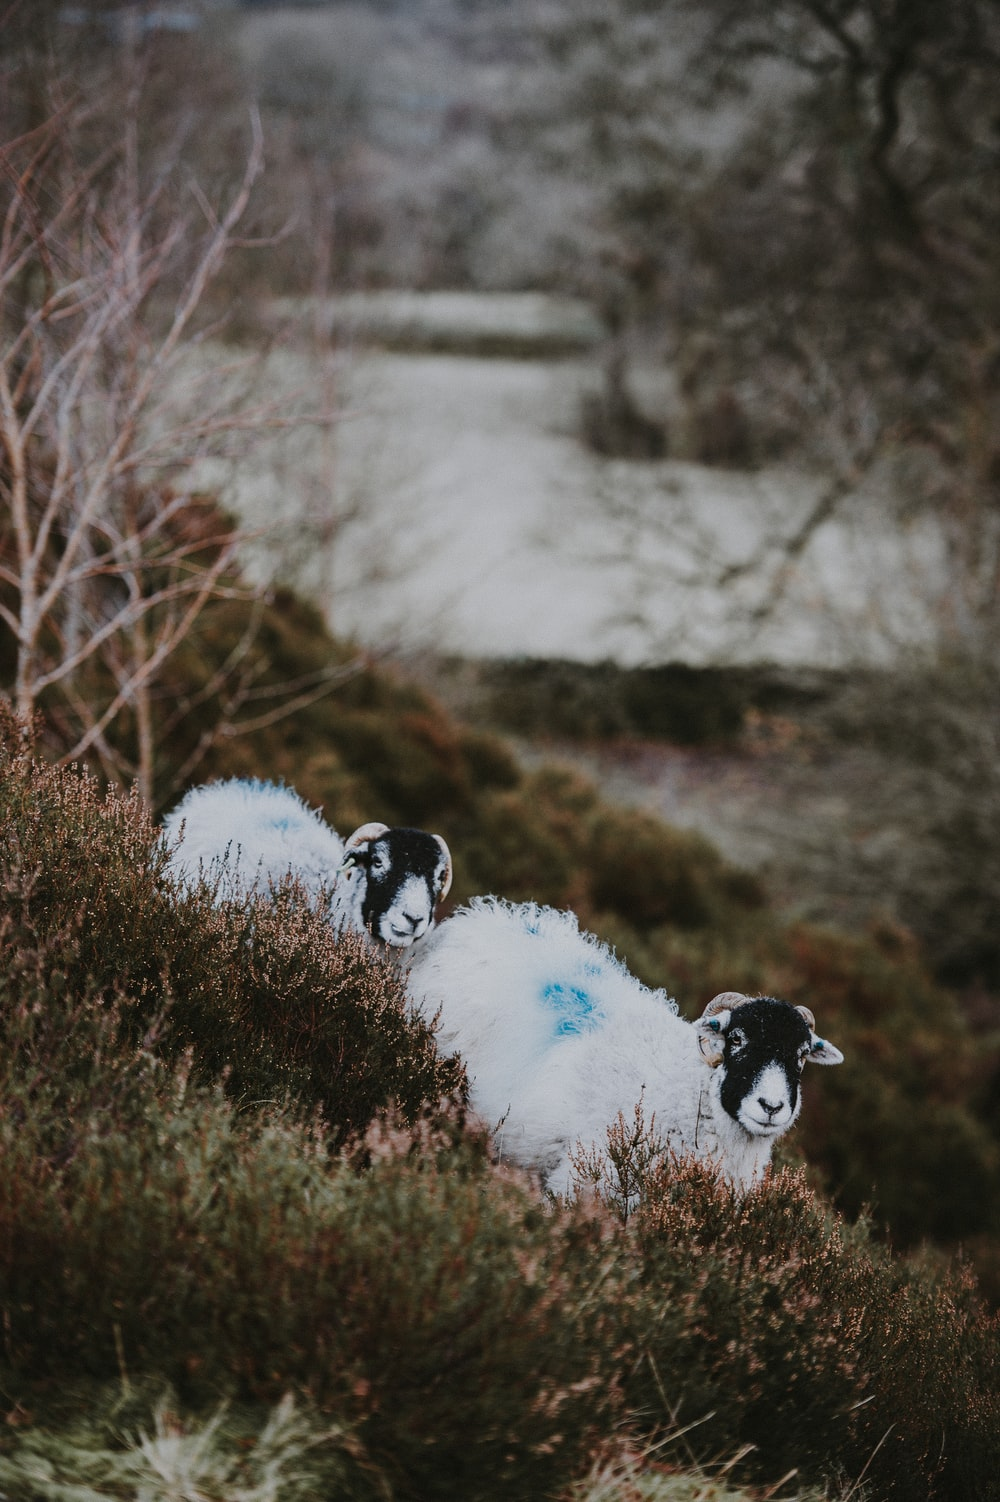 two white-and-black sheeps overlooking body of water during daytime